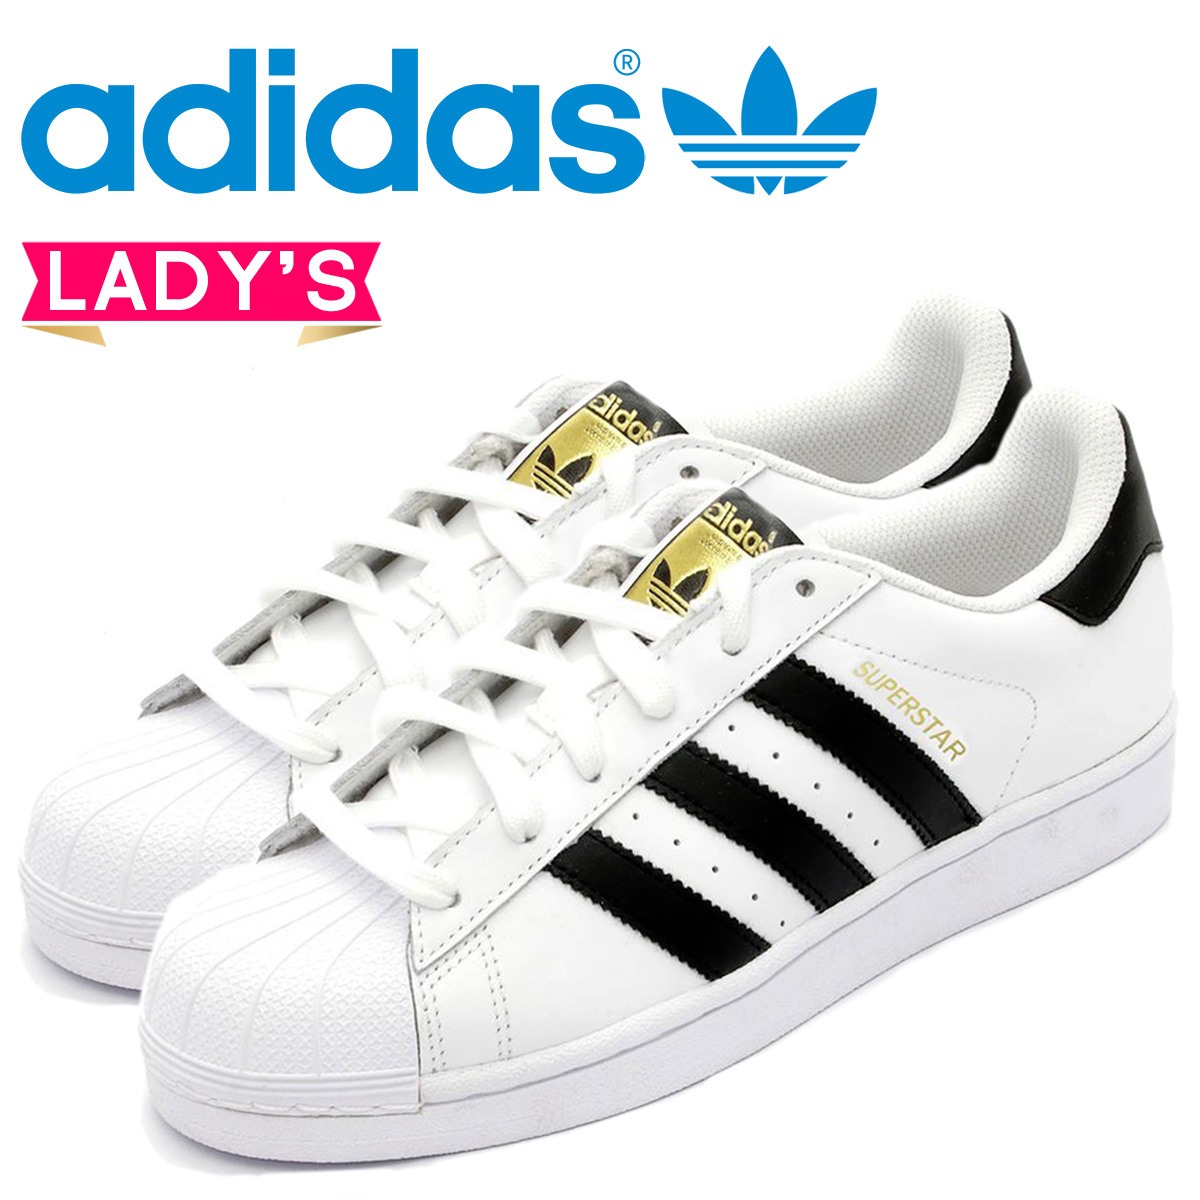 sale retailer bc3b9 3cb80 adidas Originals Adidas originals superstar sneakers Lady's SUPERSTAR J  C77154 shoes white white